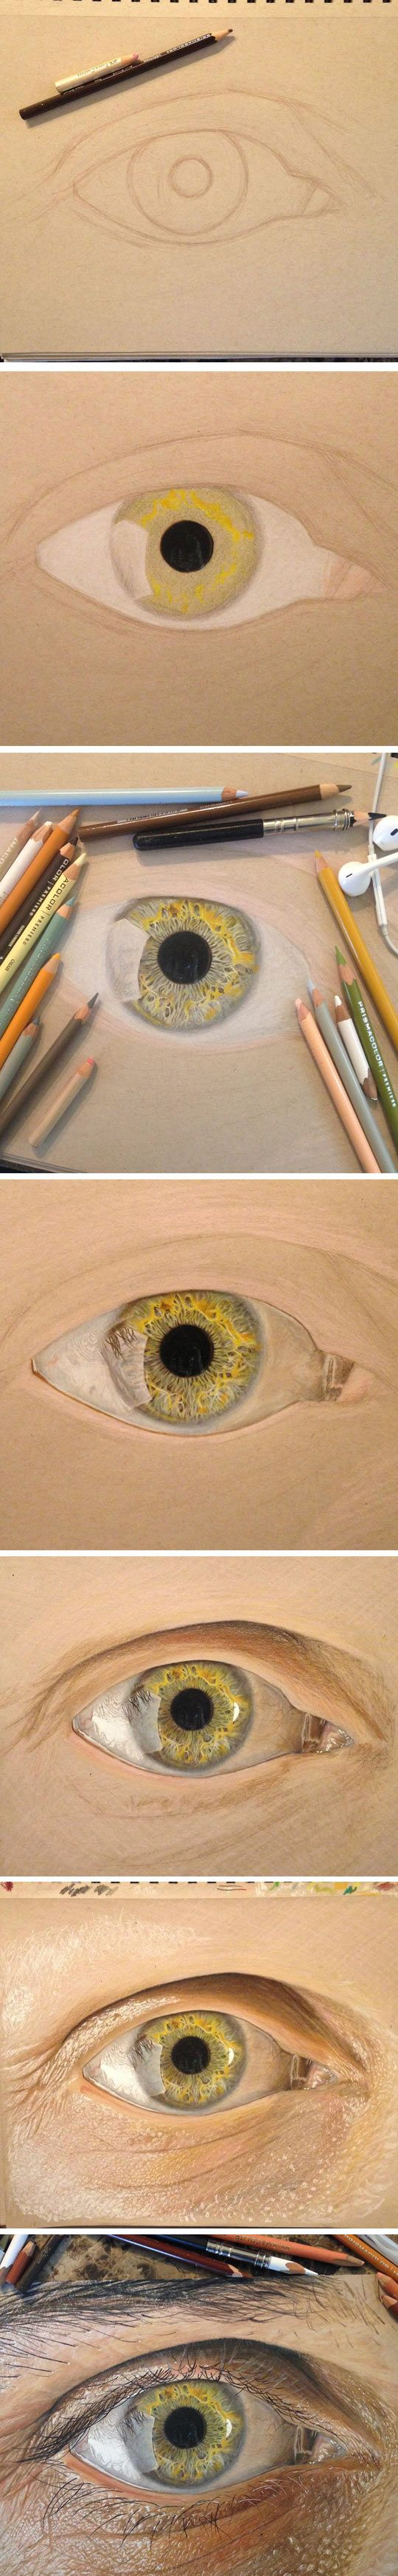 Jose Vergara (a.k.a. Redosking), a 19-year-old artist from Texas, is drawing close-ups of the human eye with the sort of hyper-realistic level of detail that one would ordinarily expect from experienced masters.  Vergara draws using only colored pencils, which makes his work all the more impressive. Most of us use or have used, at one point or another, colored pencils, which makes it easier to realize just how much more talented he is than most of us.